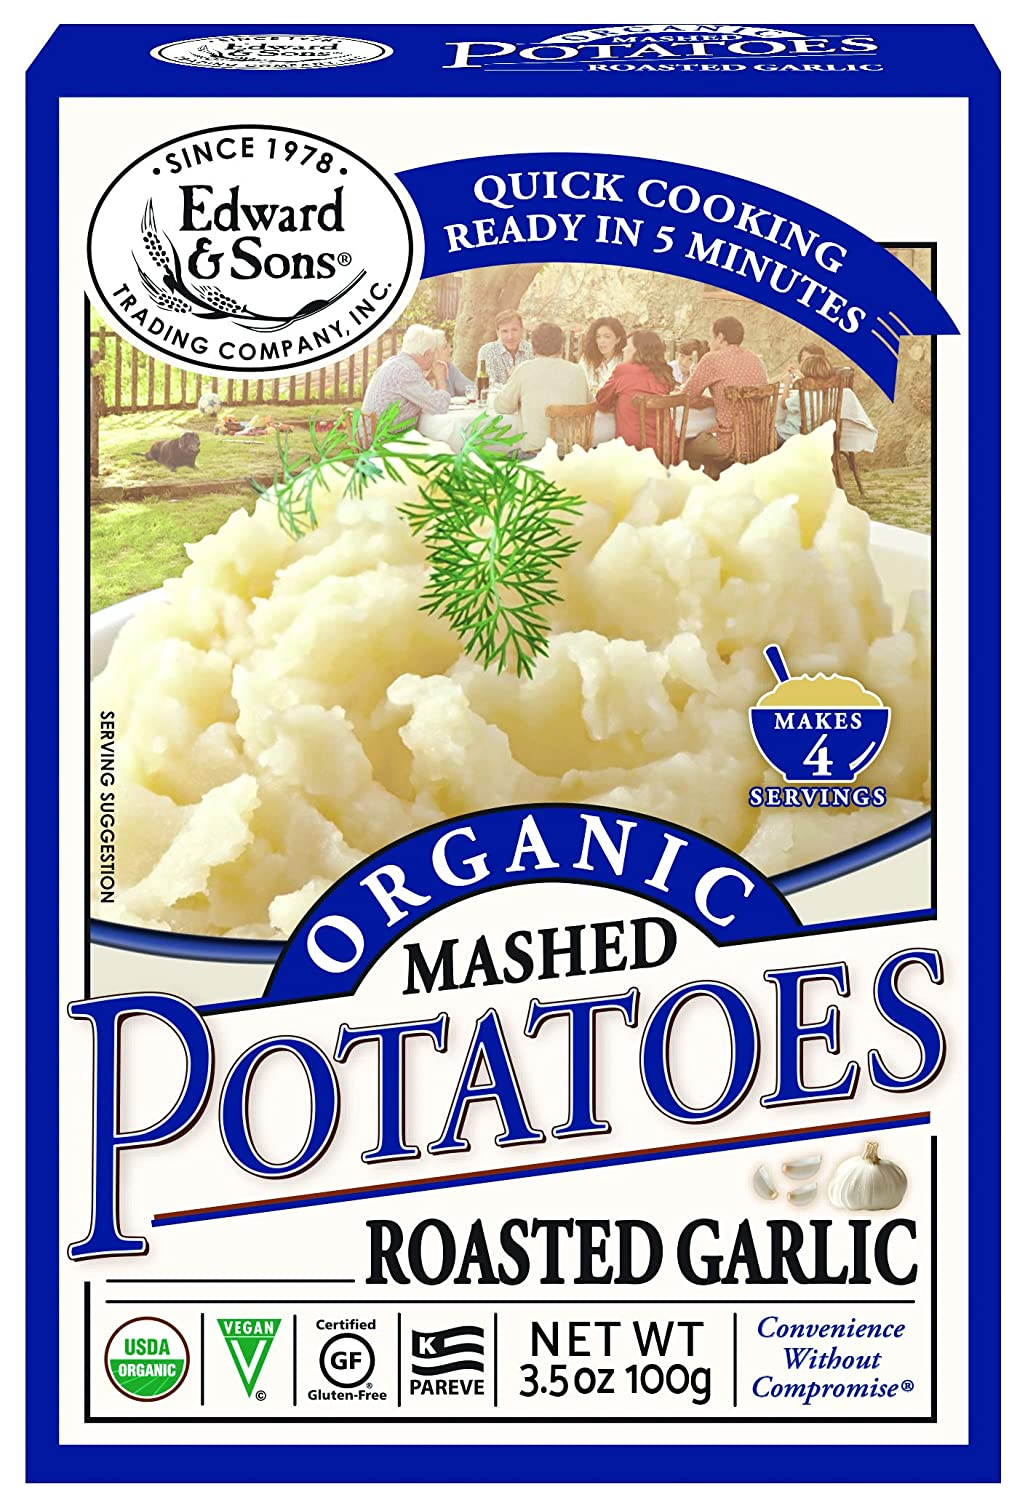 Edward & Sons Organic Mashed Potatoes Roasted Garlic, 3.5 Ounce Boxes (Pack of 6)